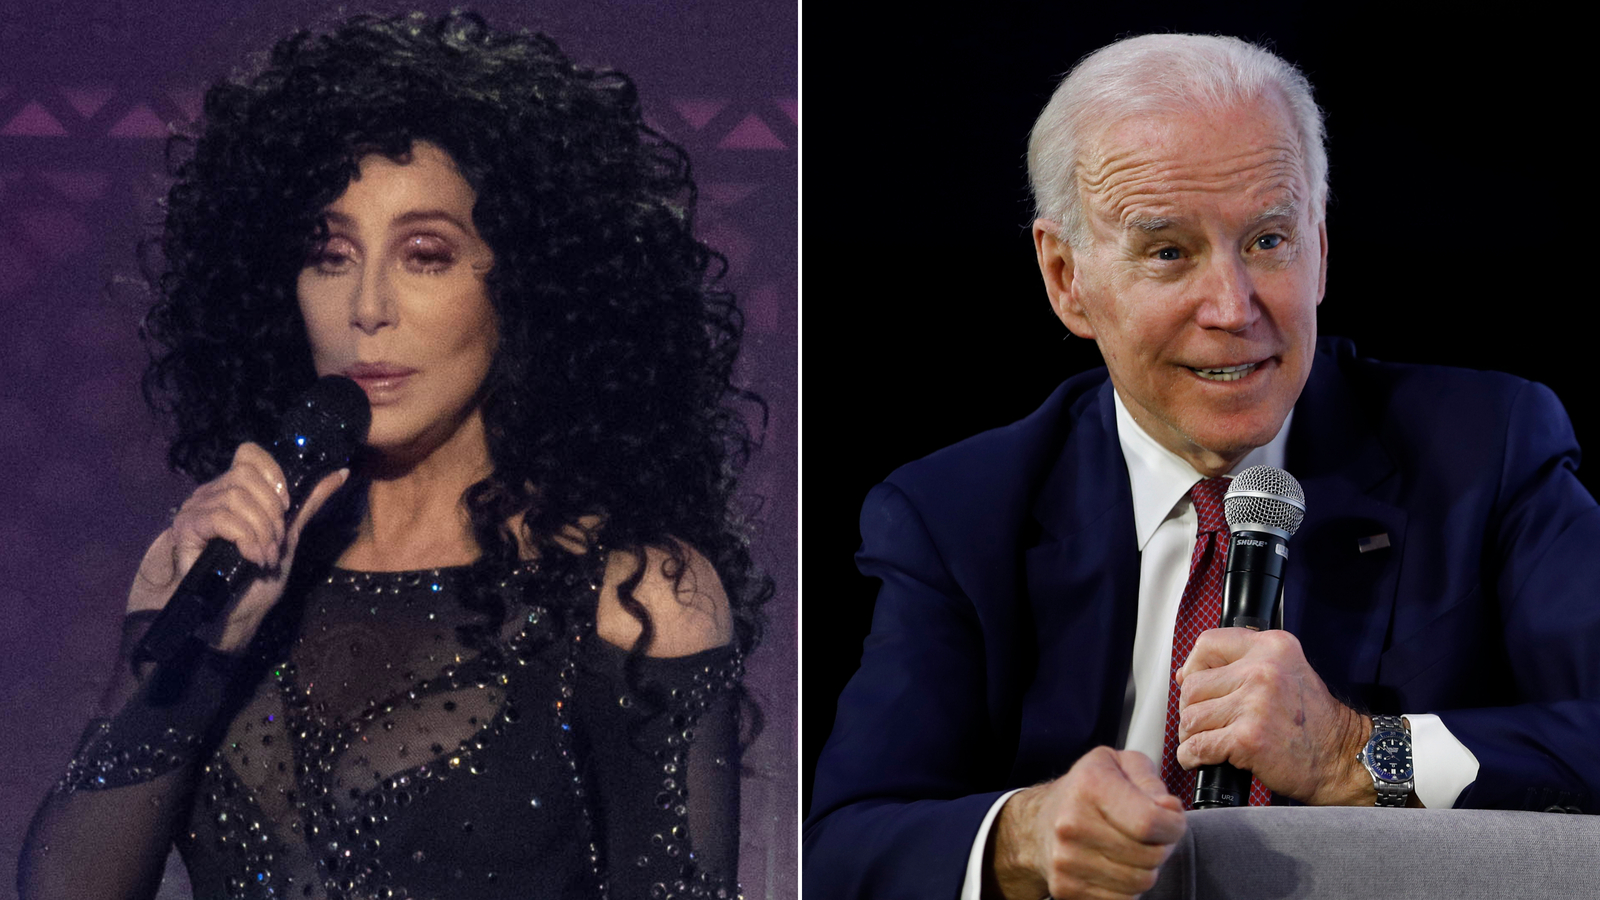 Cher says she still believes in Joe Biden